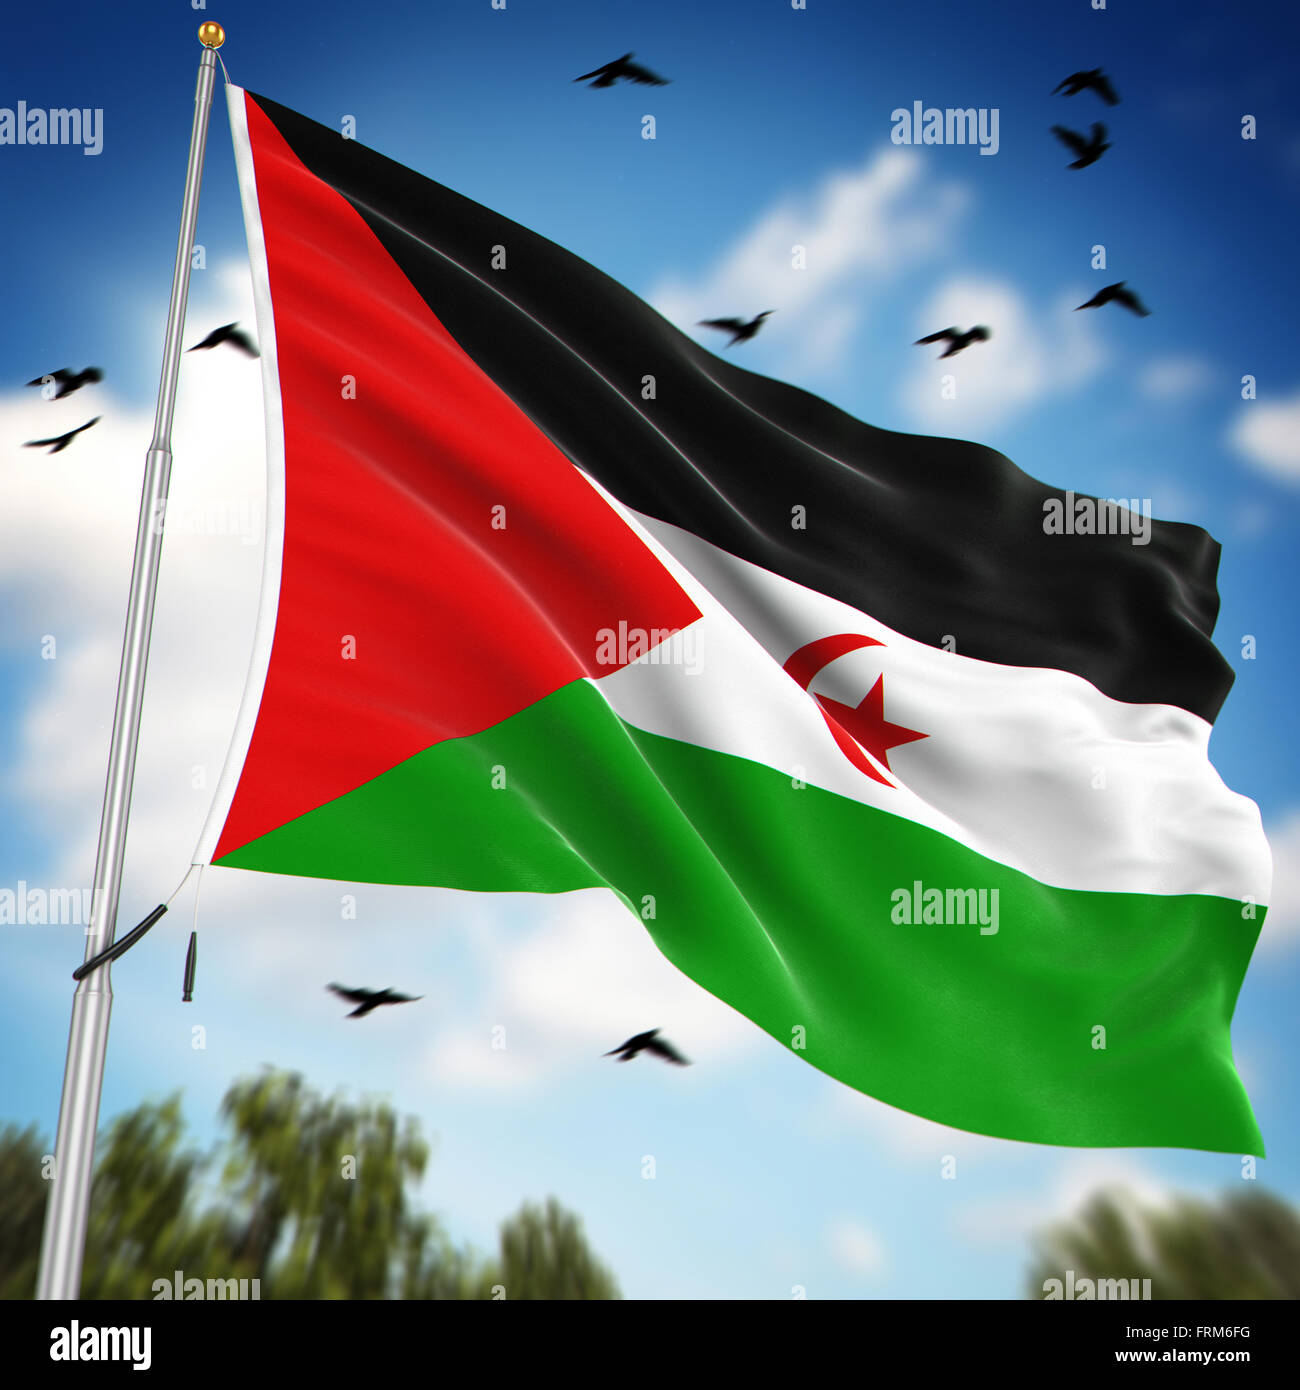 Flag of the Sahrawi Arab Democratic Republic , This is a computer generated and 3d rendered image. - Stock Image